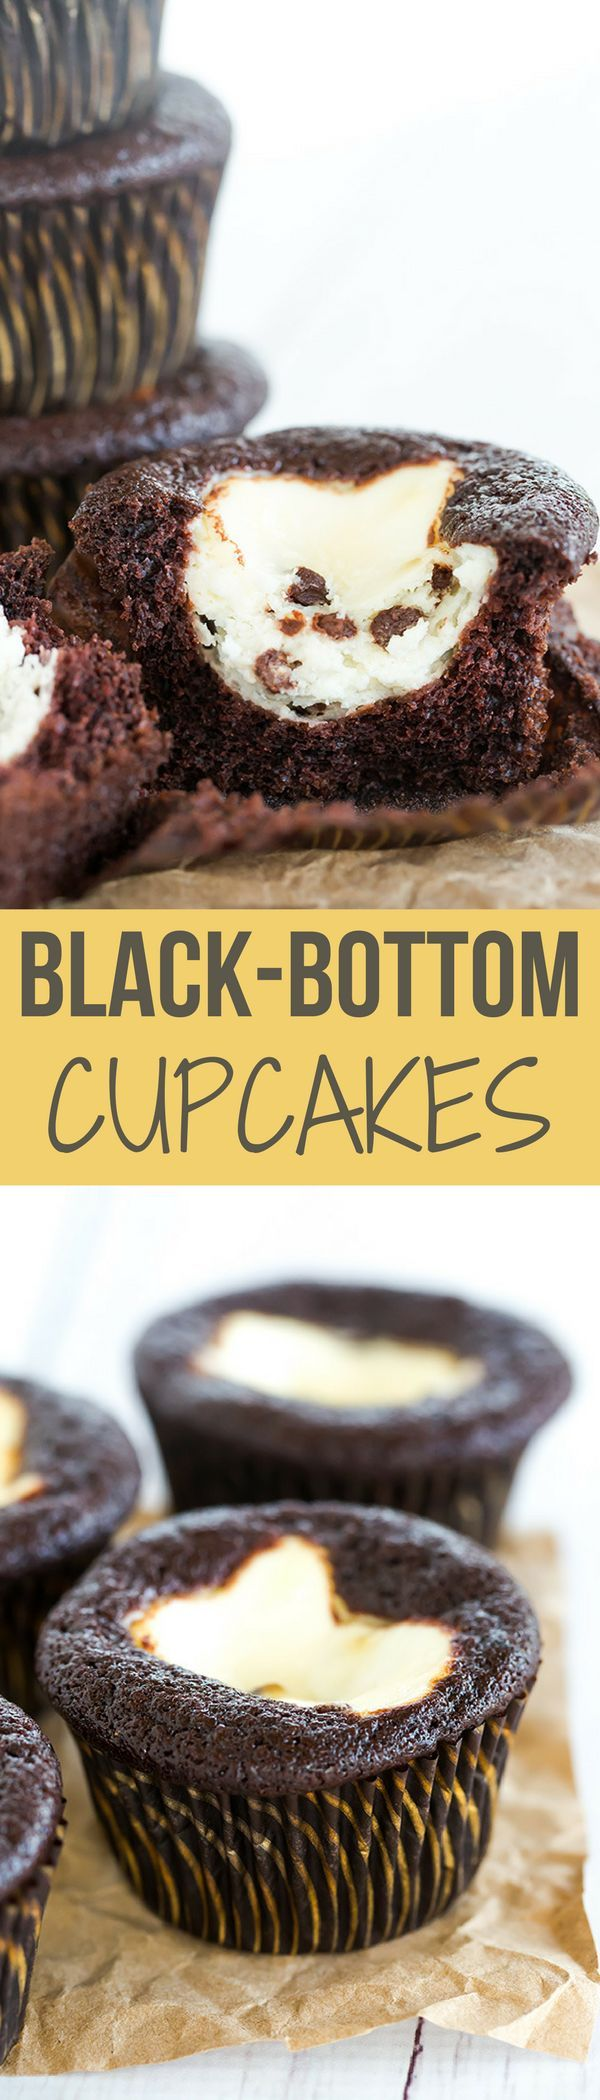 Classic black-bottom cupcakes - super moist chocolate cupcakes topped with a cheesecake filling and mini chocolate chips. The best of both worlds!